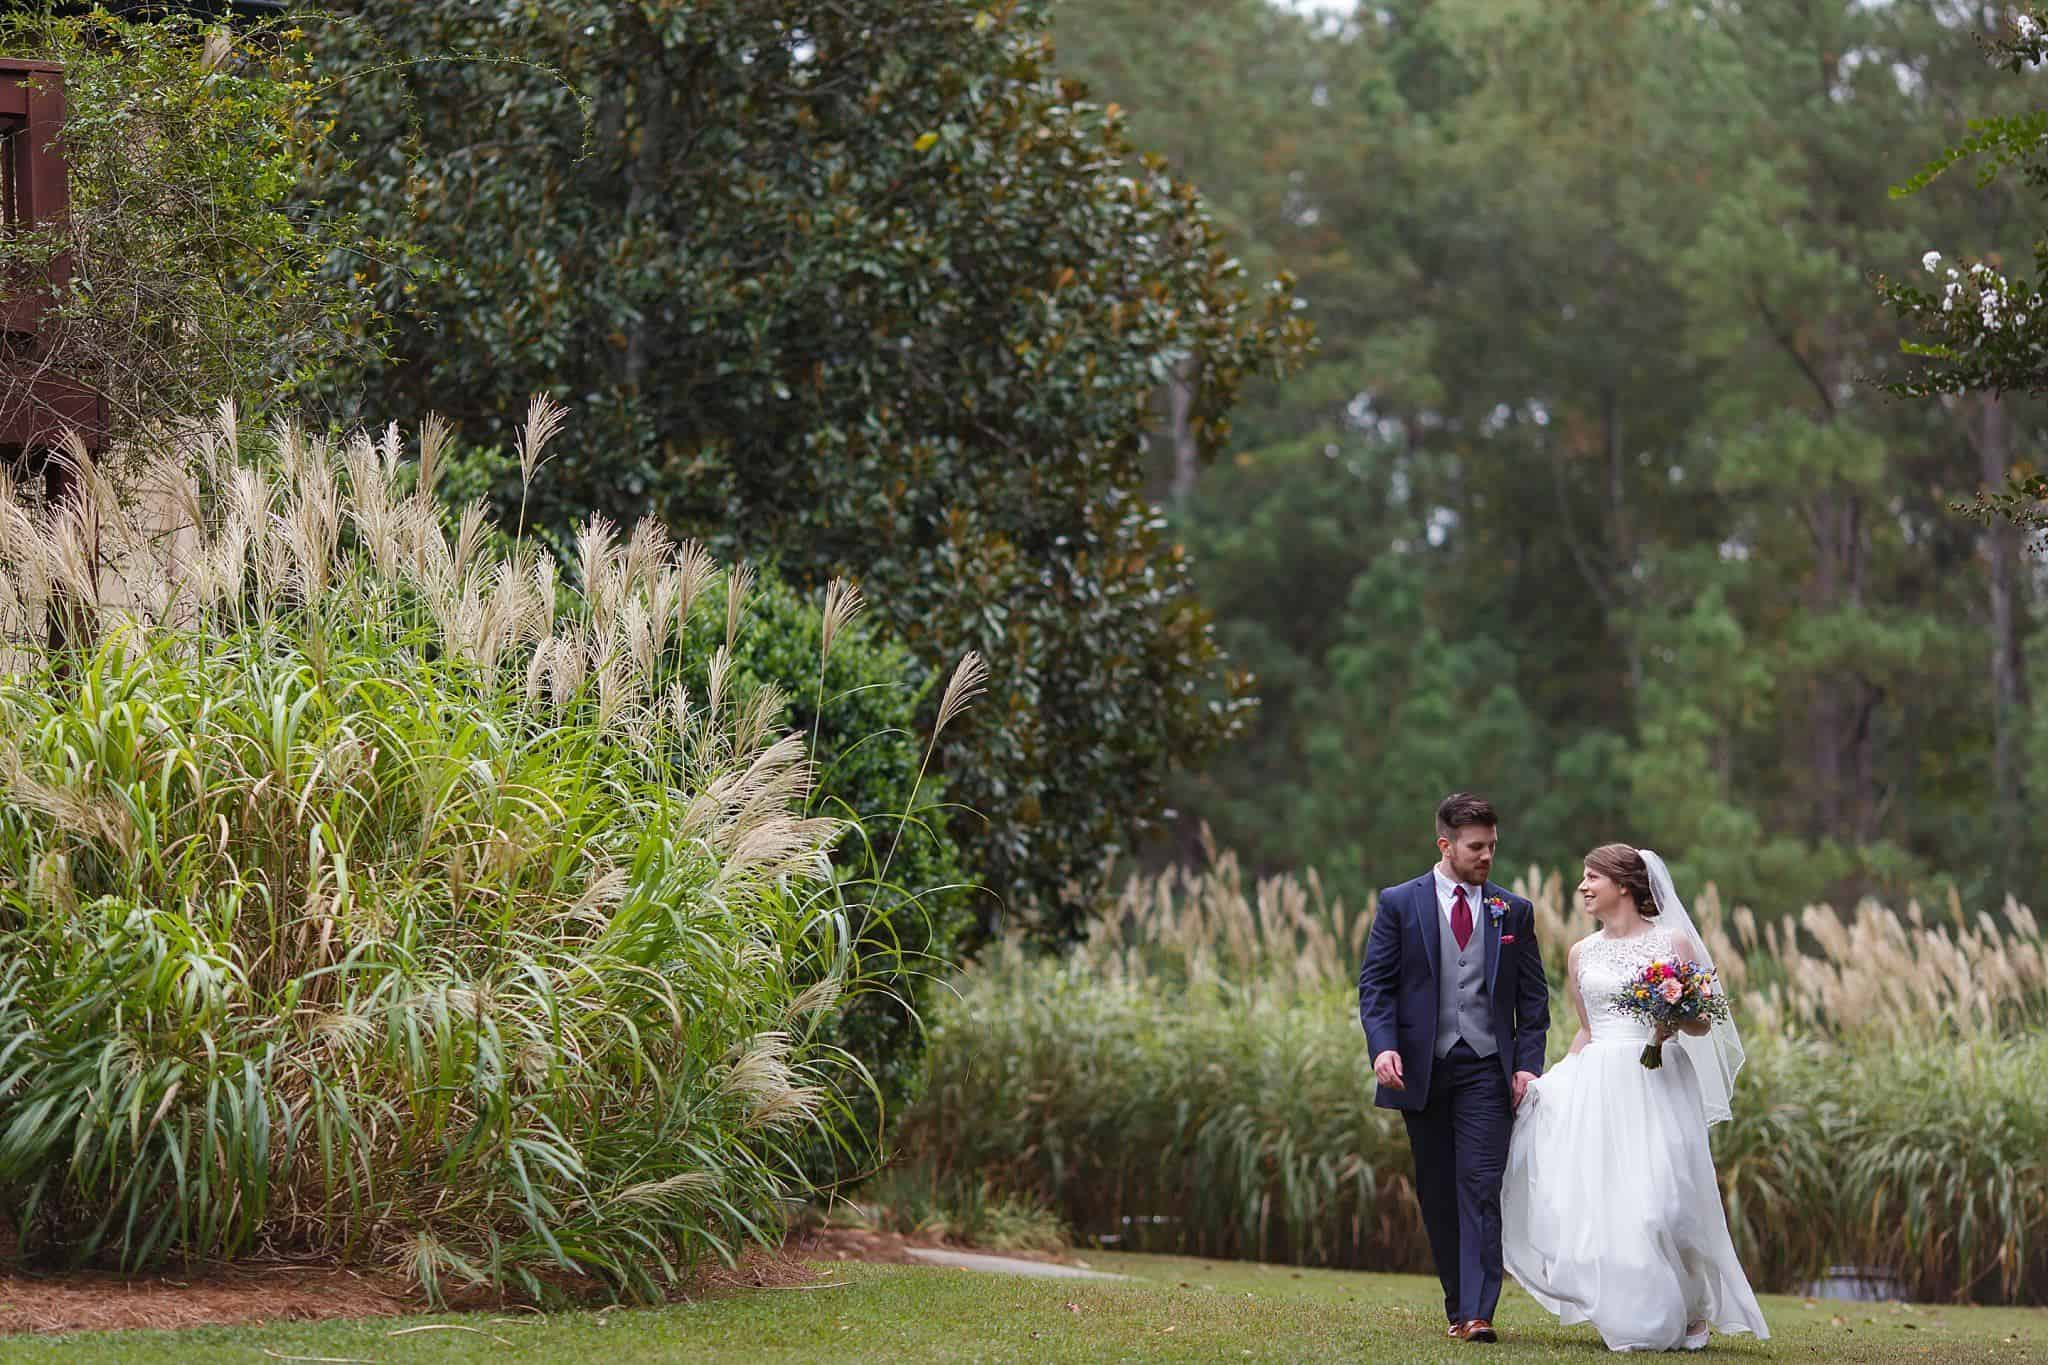 Bride and groom promenade on the lawn